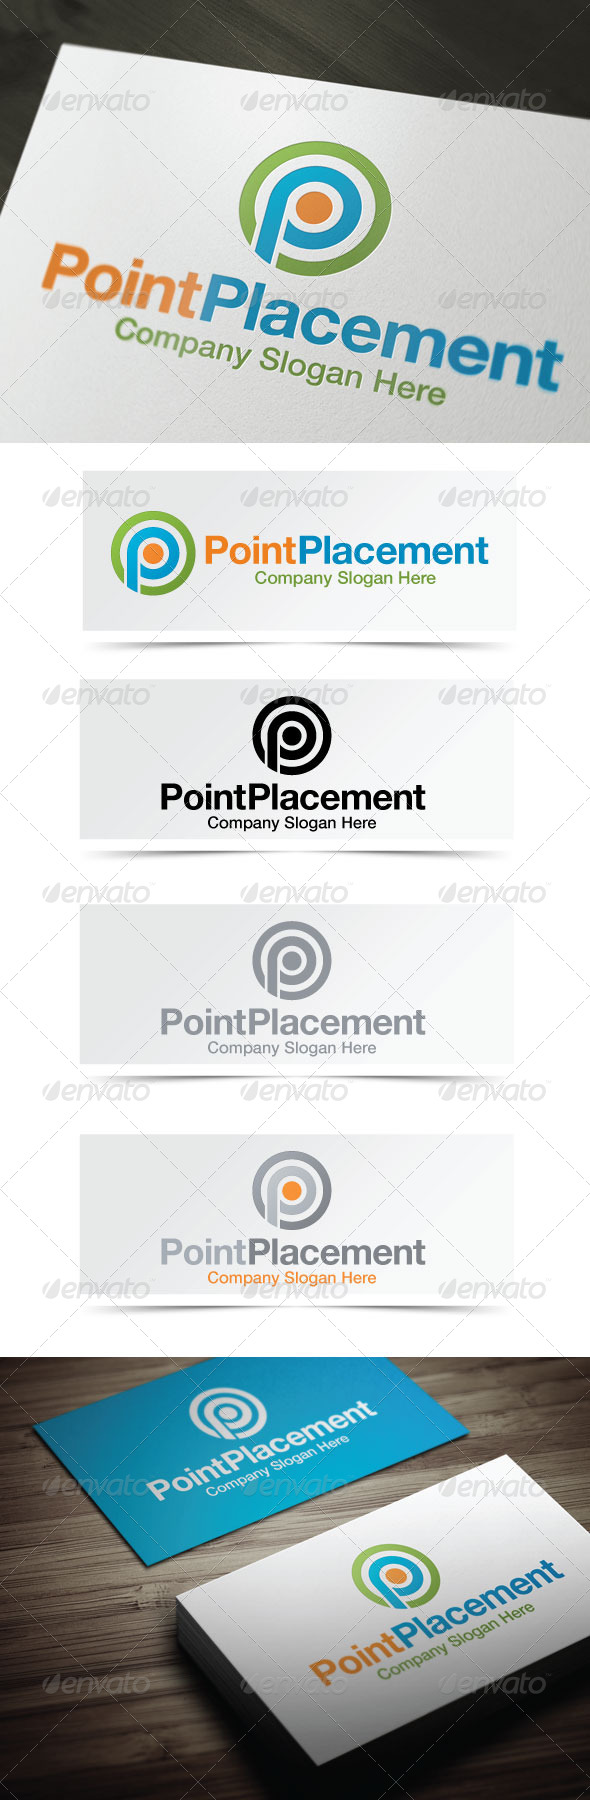 Point Placement - Letters Logo Templates